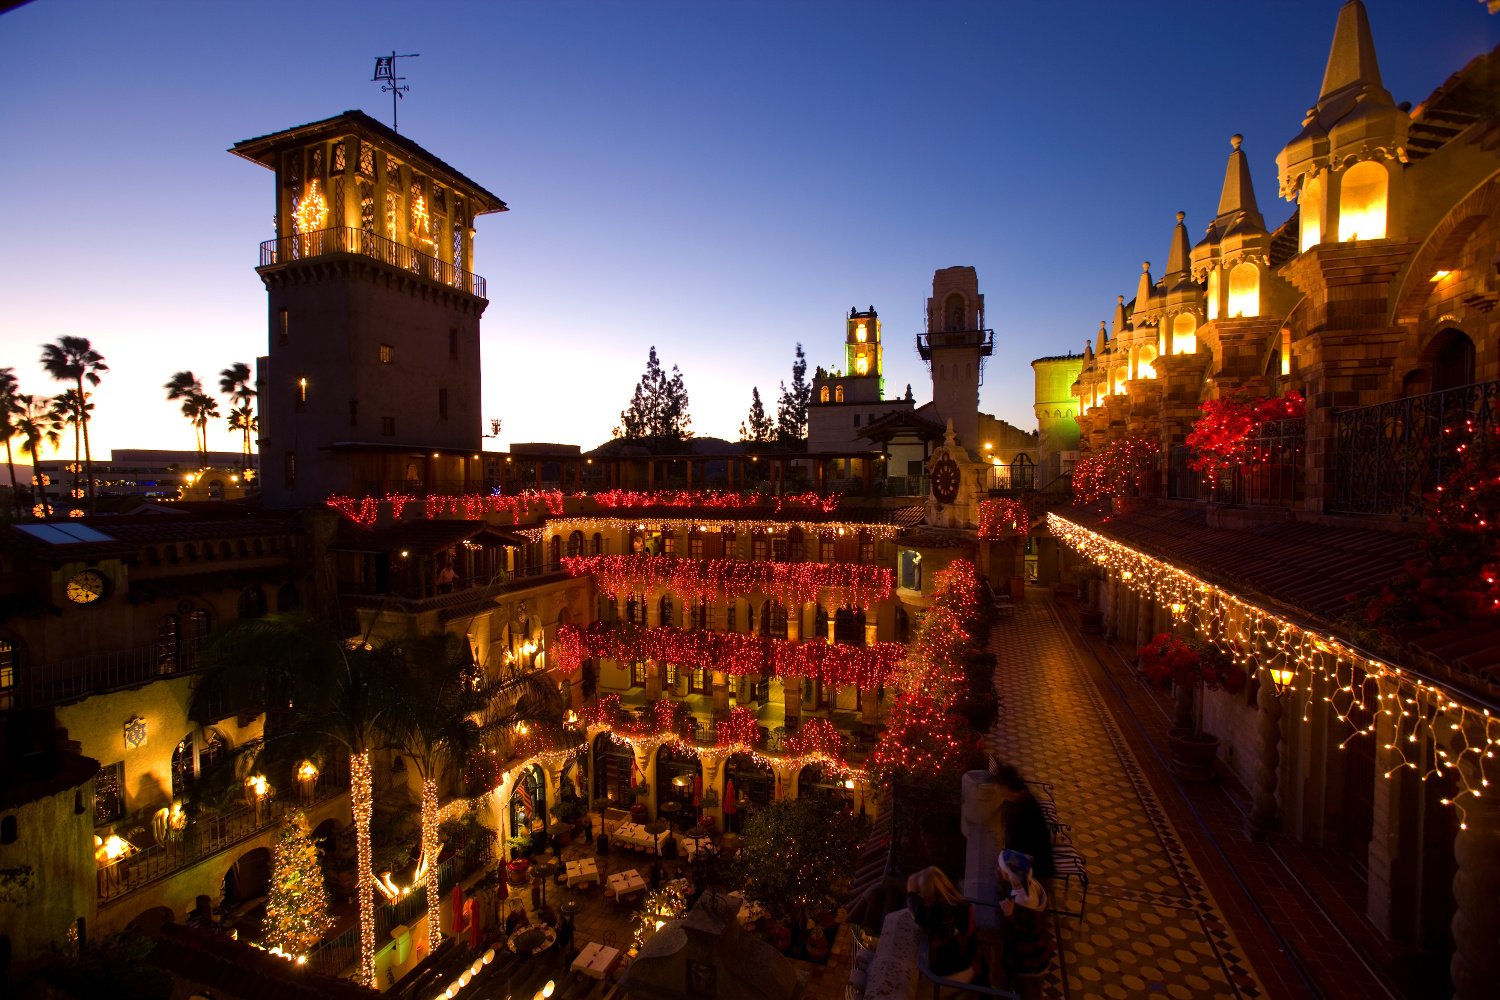 Mission Inn Holiday Seasonal Festival of Lights